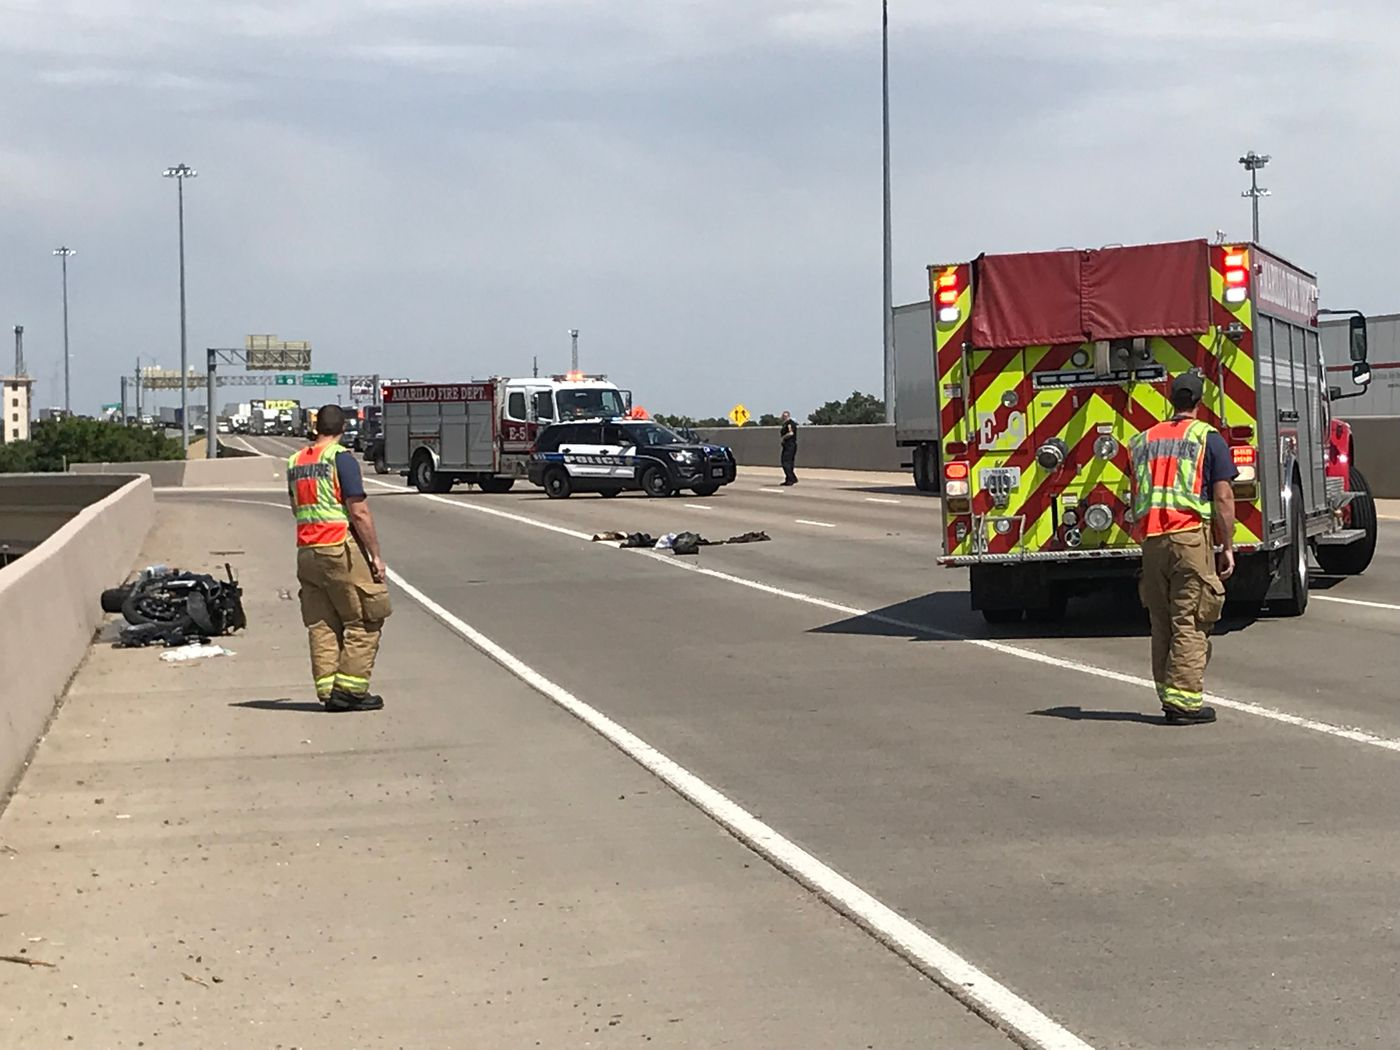 I 40 Interchange Accident Sends Motorcyclist To The Hospital